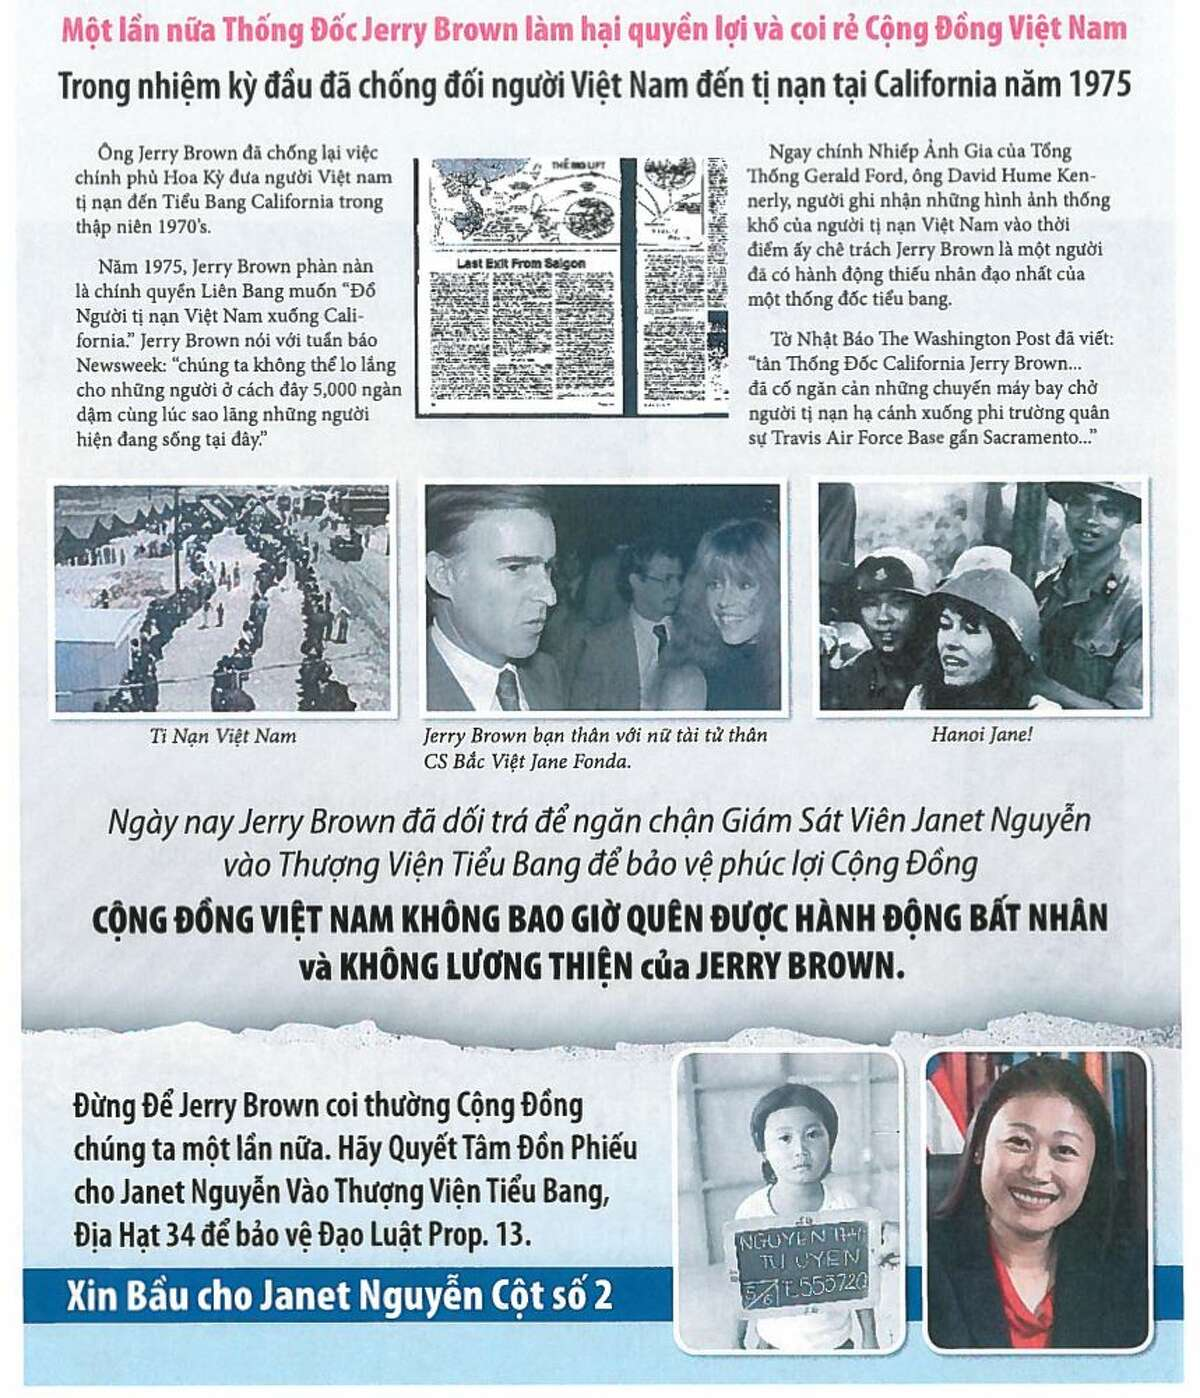 A pro-Janet Nguyen mailer aimed at Vietnamese American voters in an Orange County state Senate race.